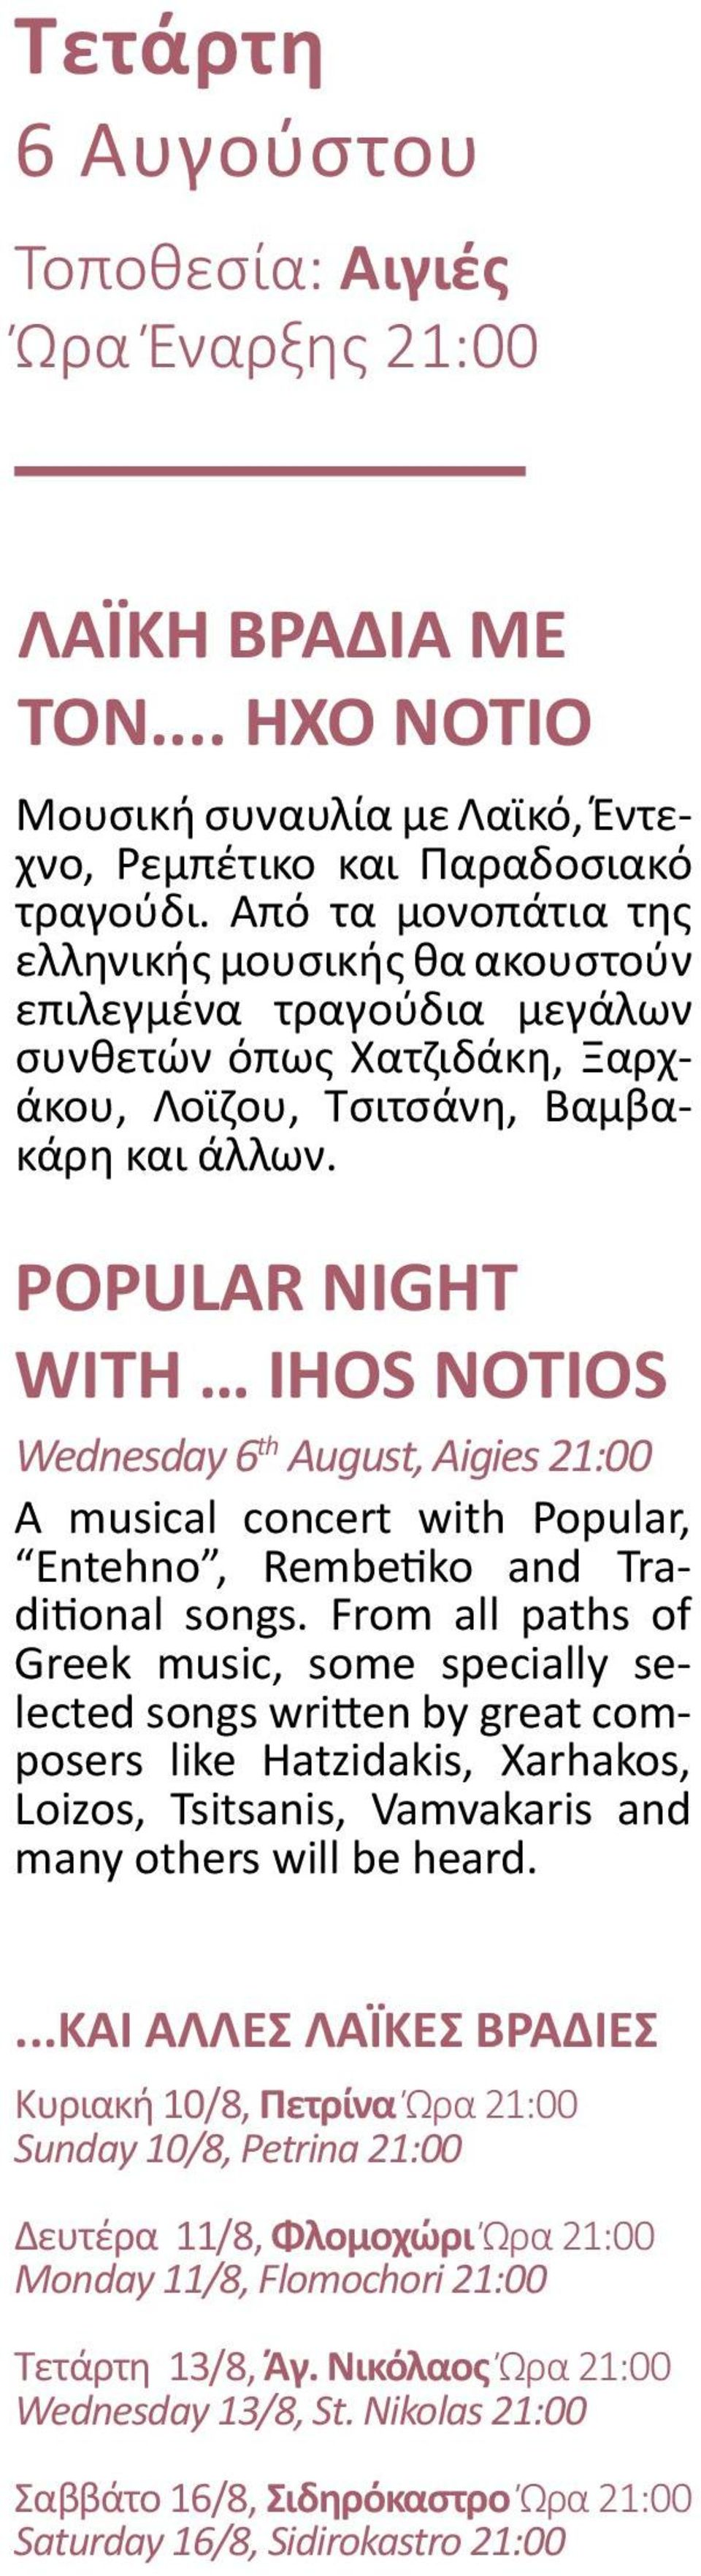 POPULAR NIGHT WITH IHOS NOTIOS Wednesday 6 th August, Aigies 21:00 A musical concert with Popular, Entehno, Rembetiko and Traditional songs.